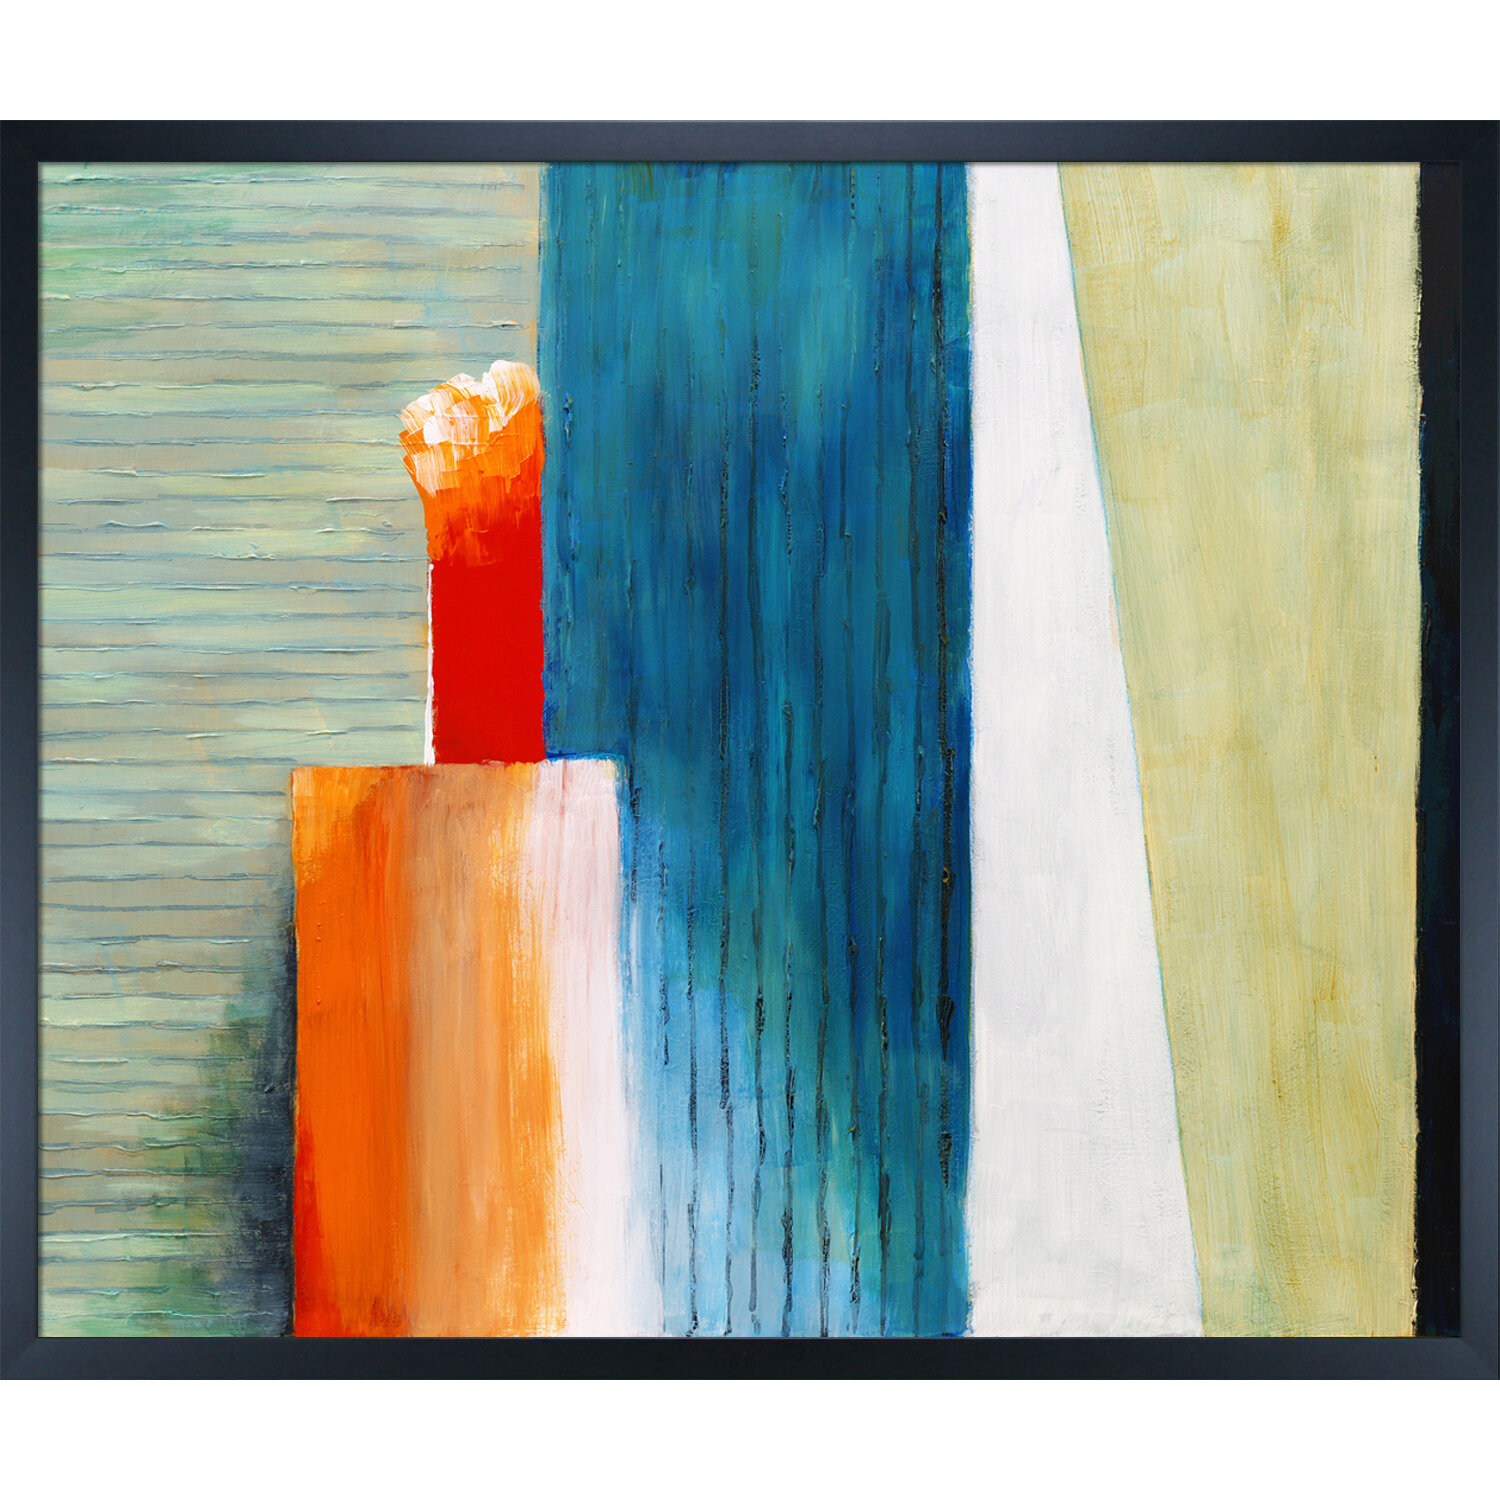 Ebern Designs Artistbe Artisbe Slats By Clive Watts Wrapped Canvas Painting Print Wayfair